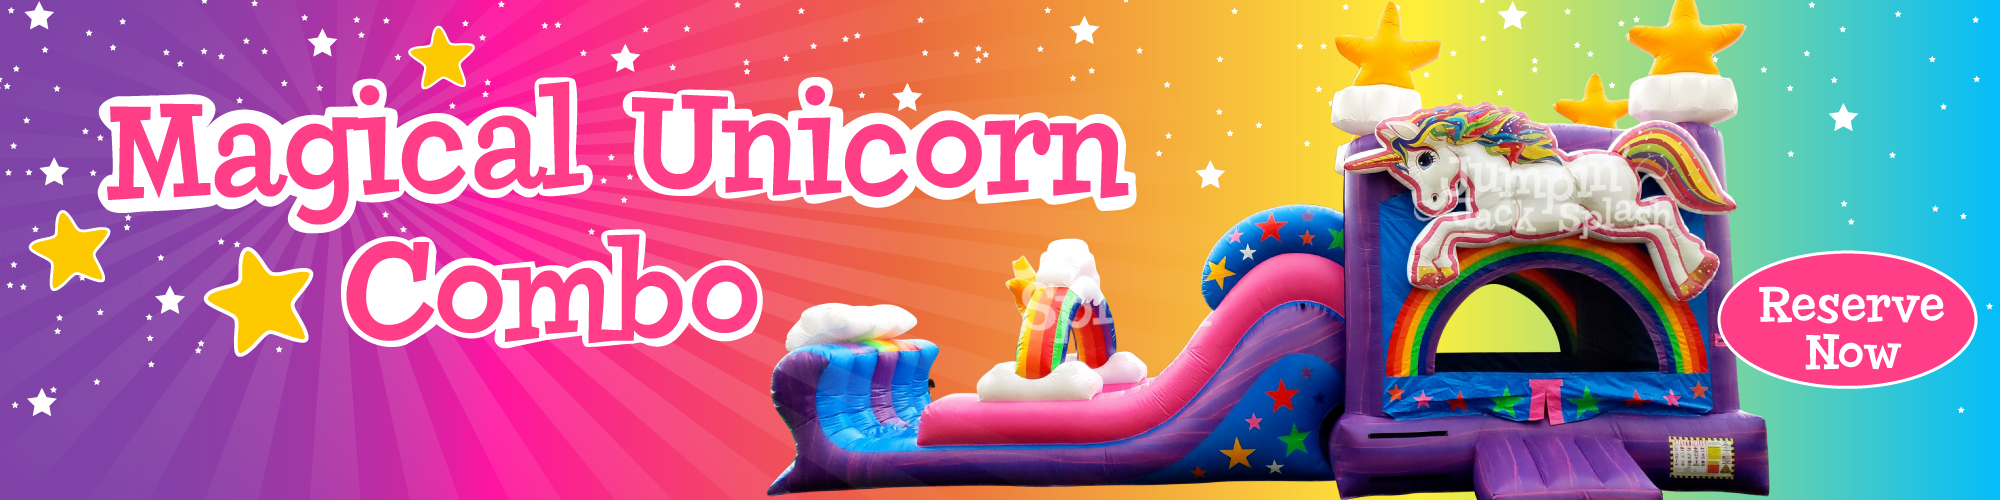 The Magical Unicorn Combo, Exclusively from Jumpin Jack Splash